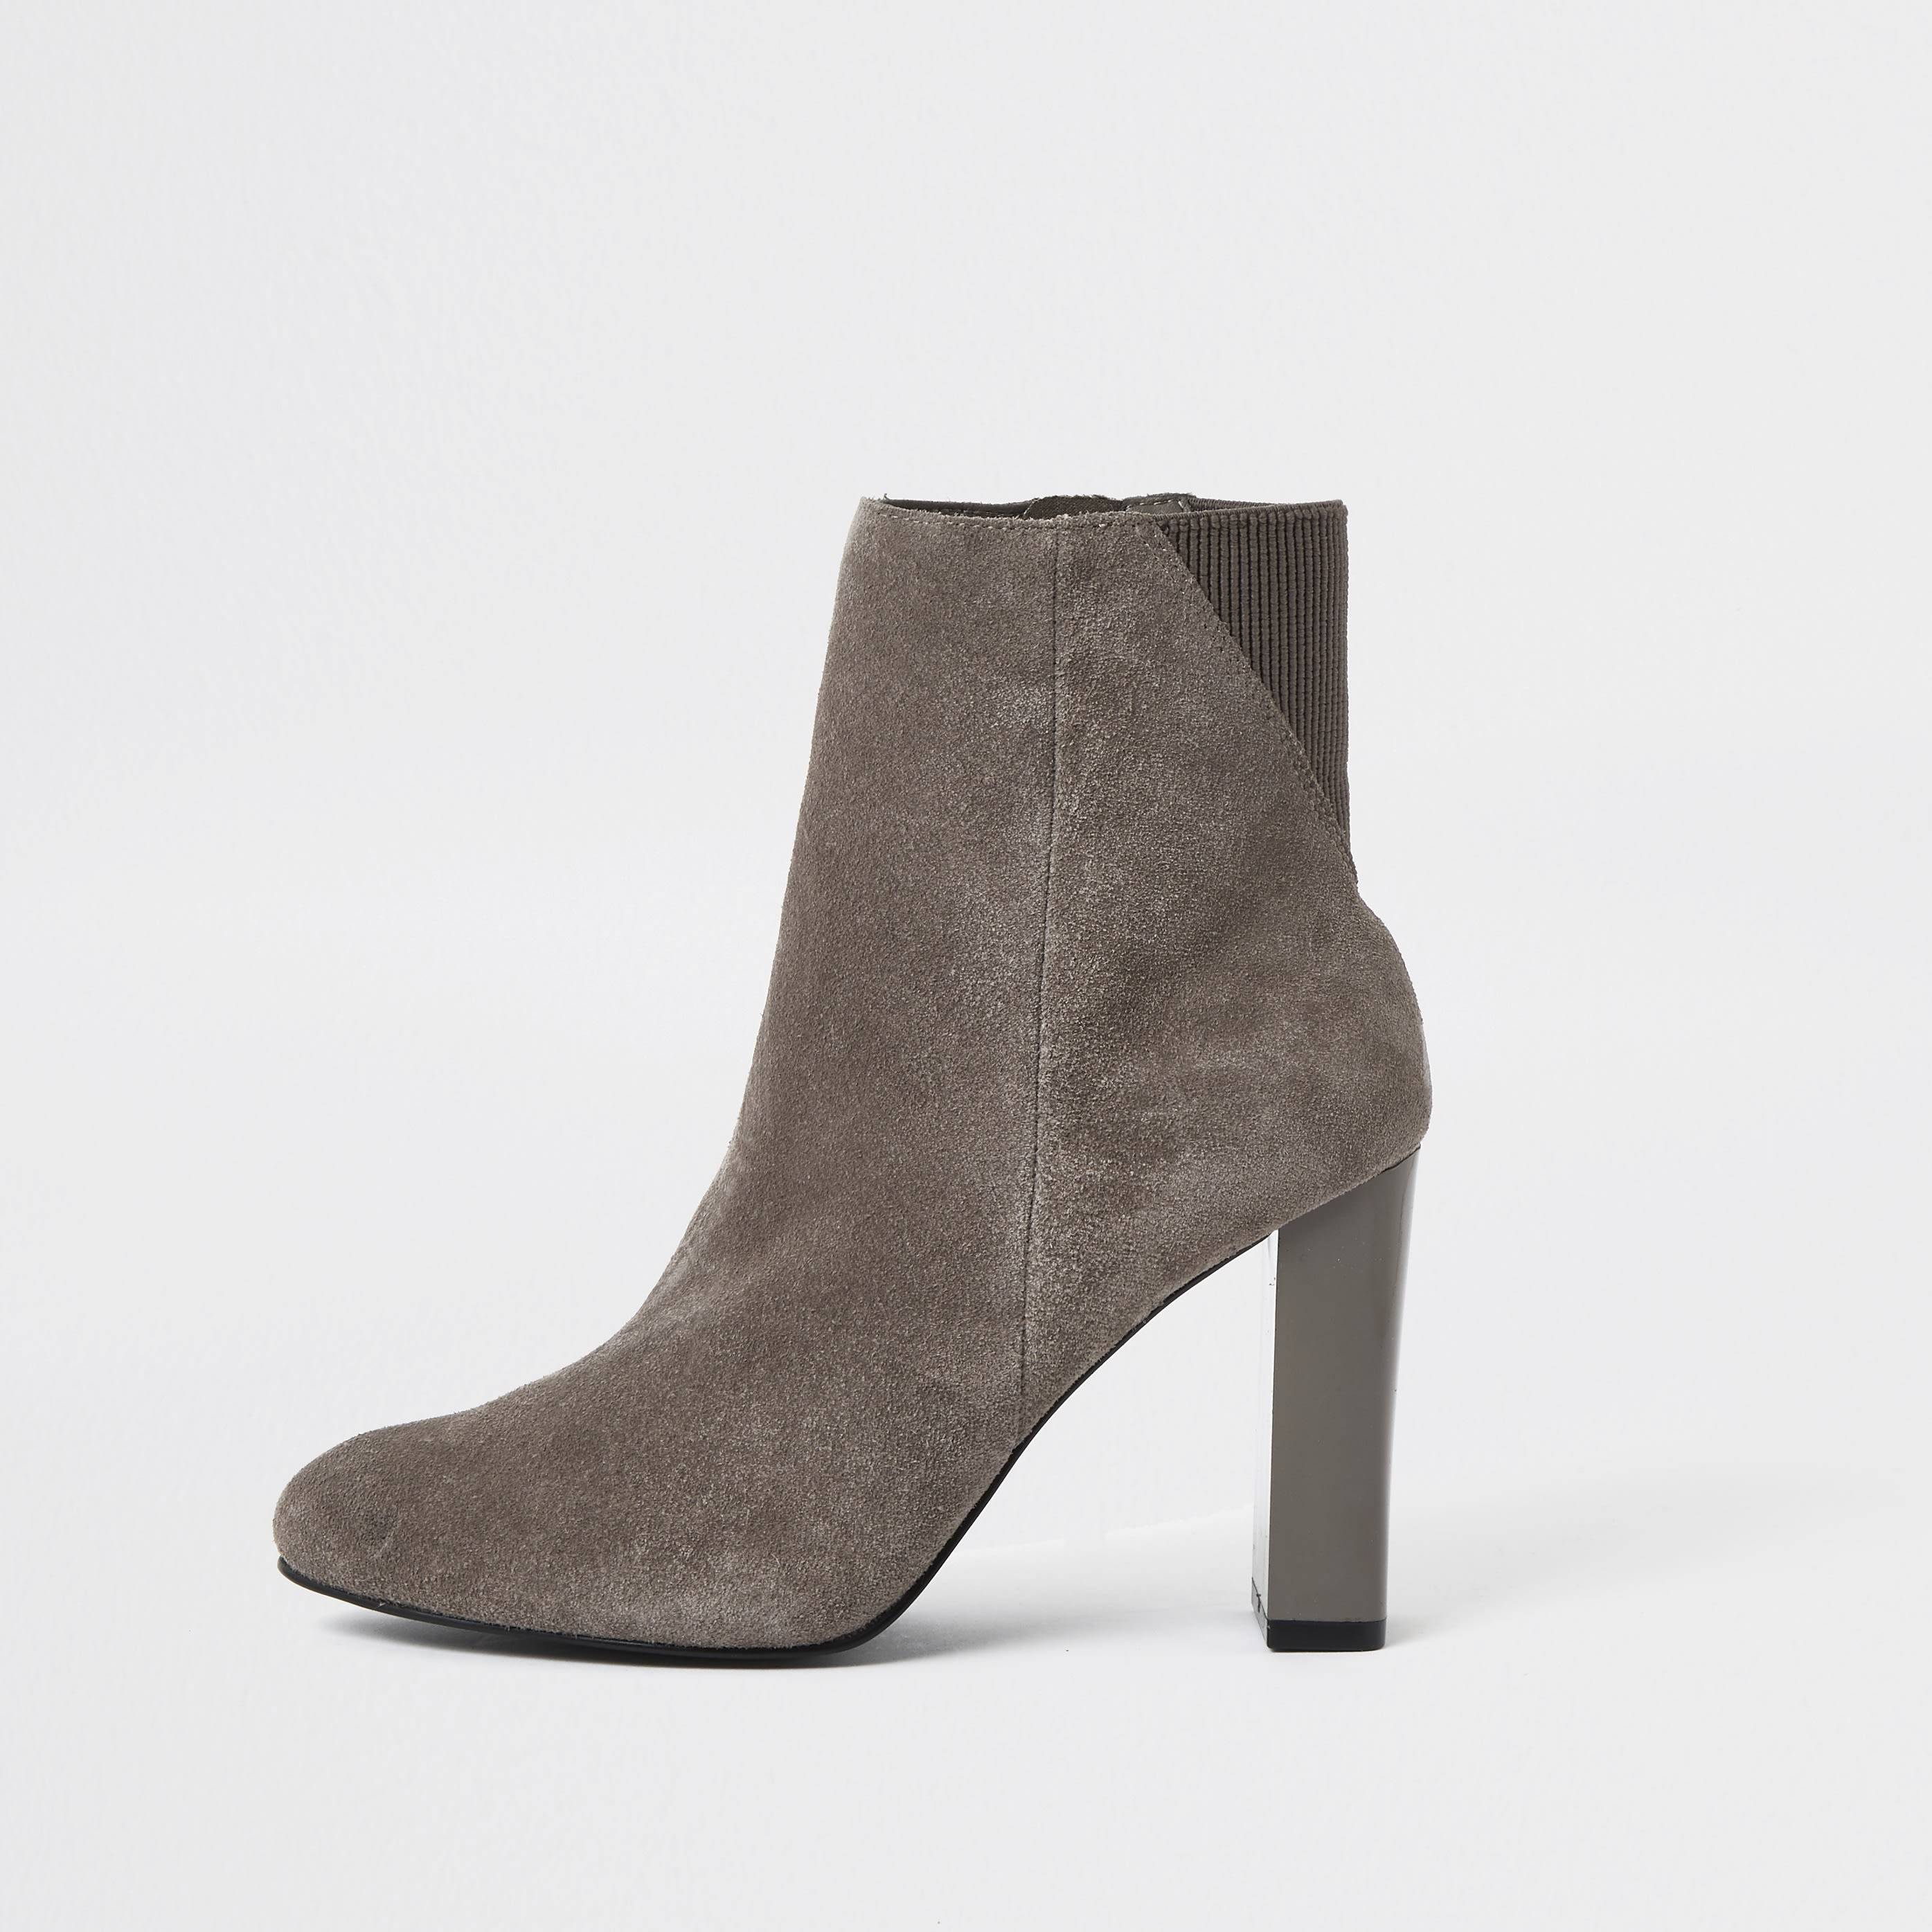 river island Womens Grey smart heeled ankle boot (6)